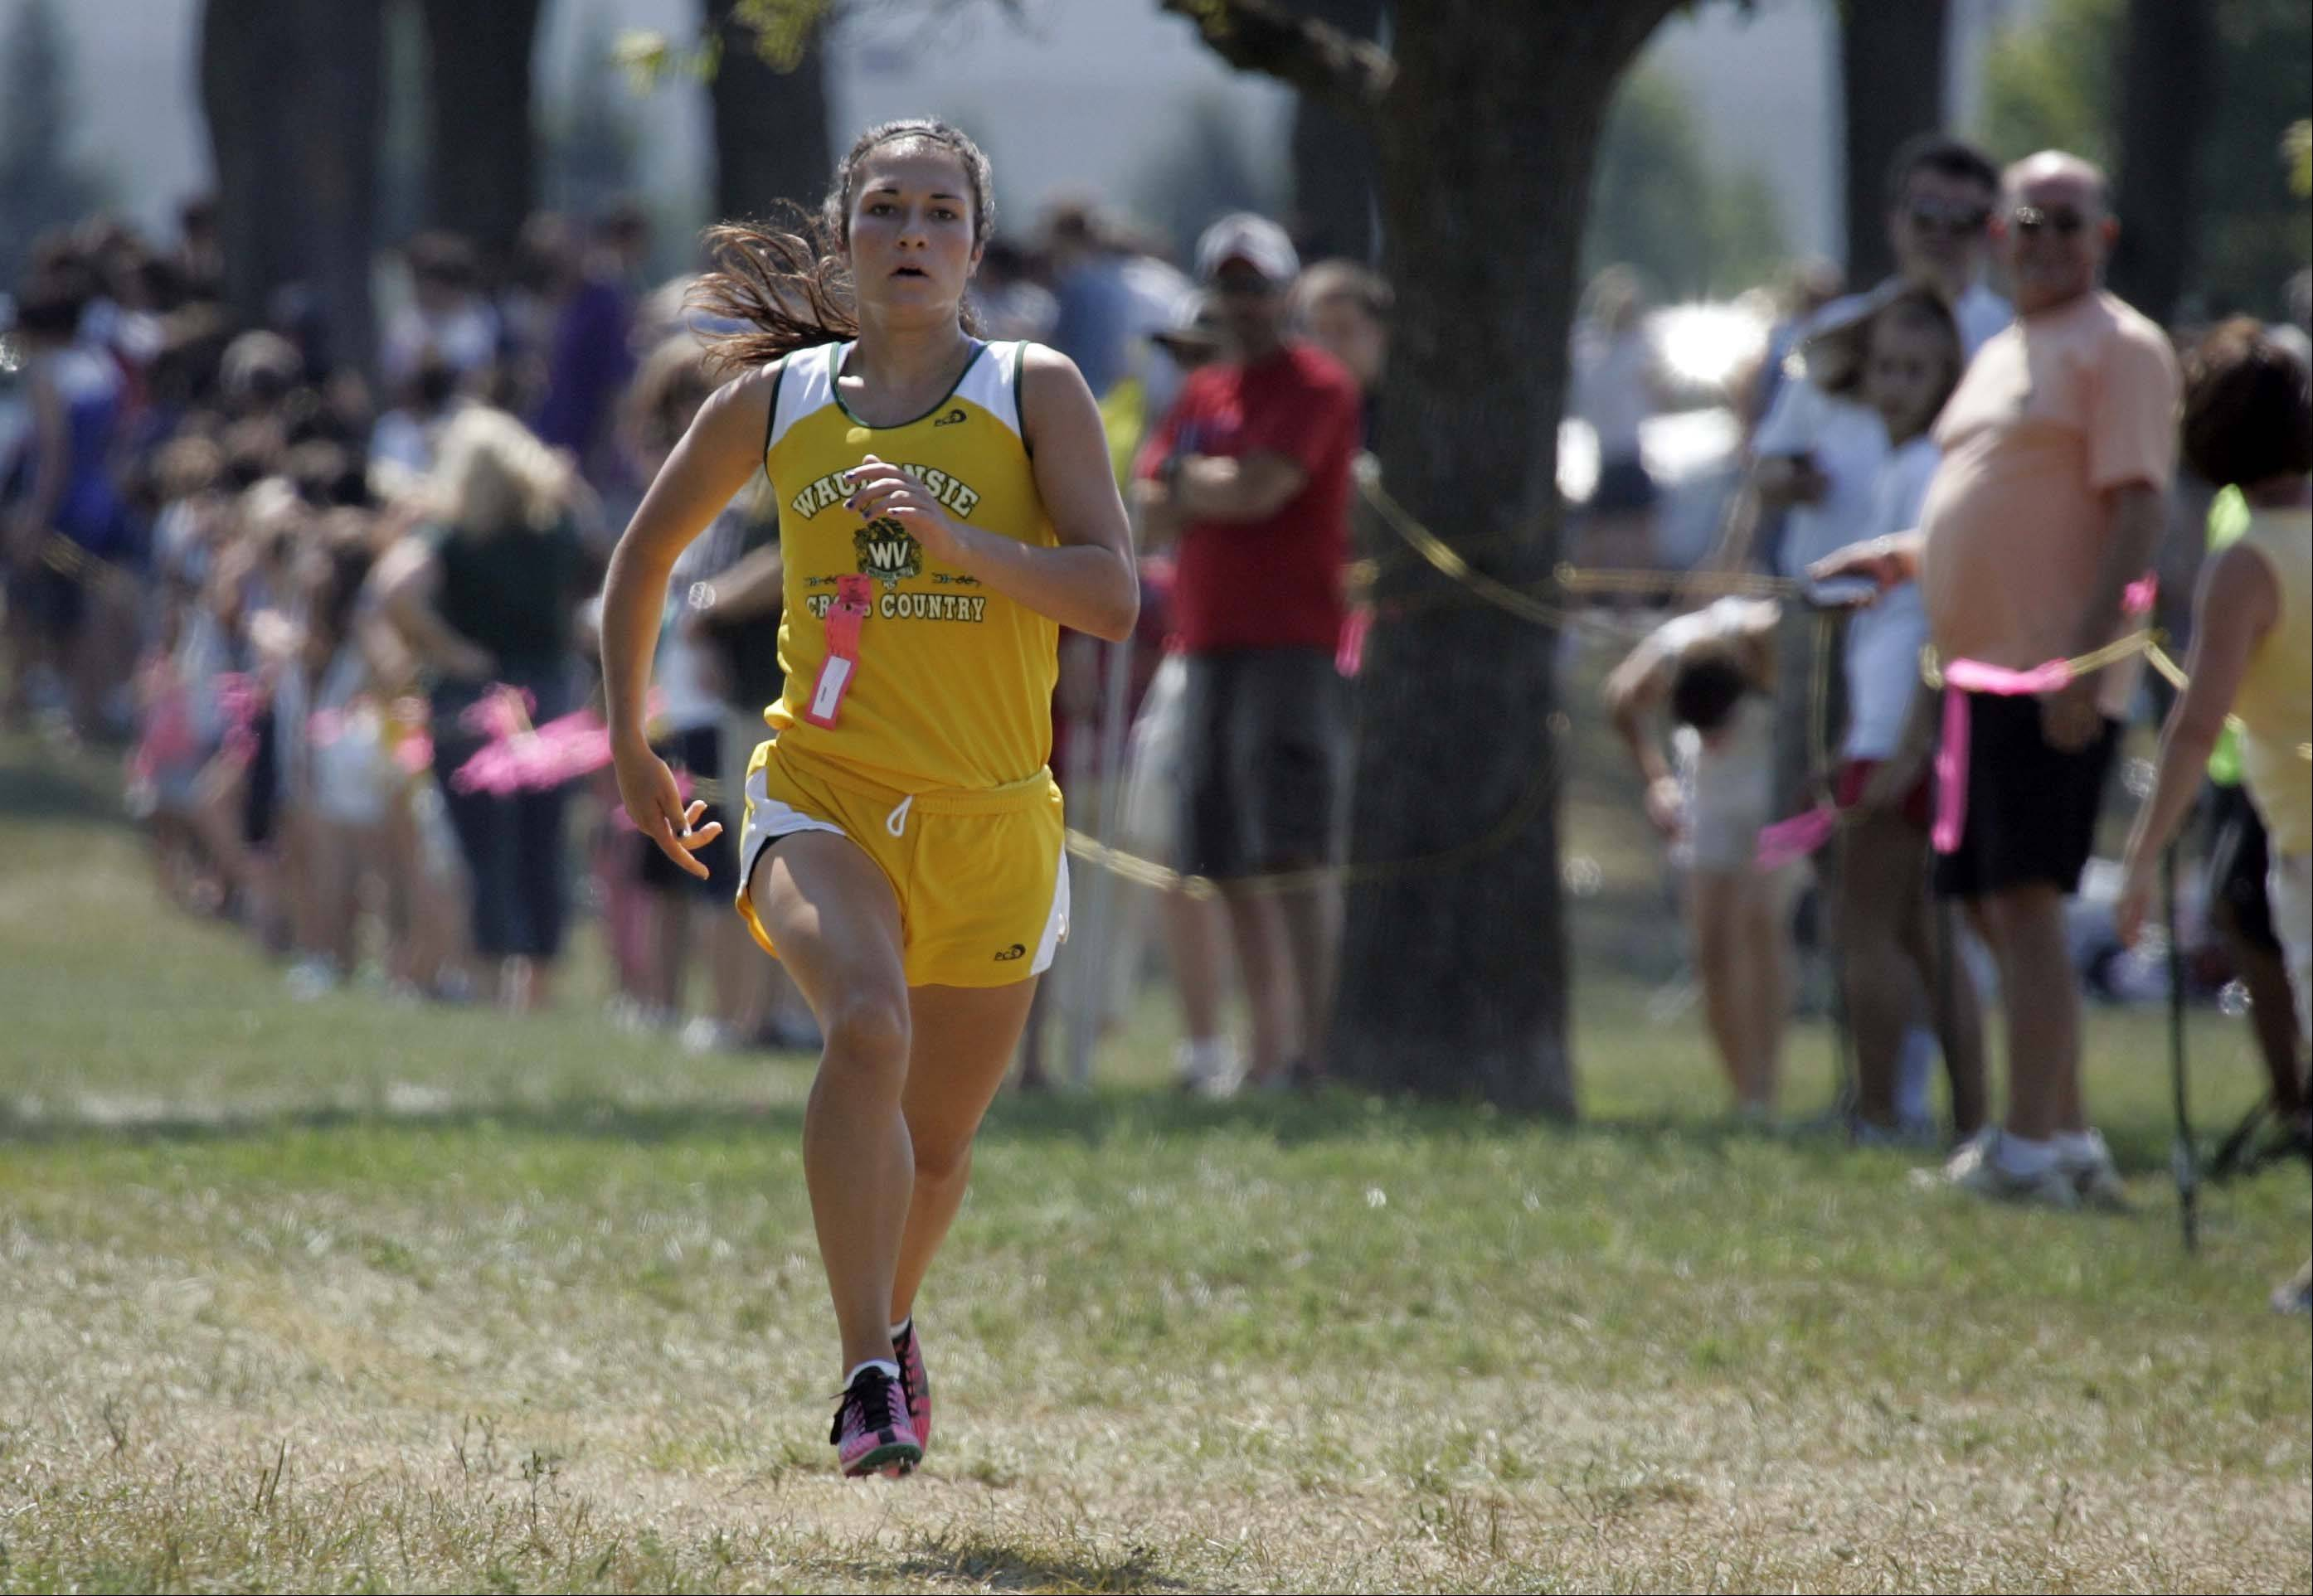 Waubonsie Valley's Ashley Bruner on the final leg to first place during the Aurora girls cross county meet at Marmion Saturday August 25, 2012.